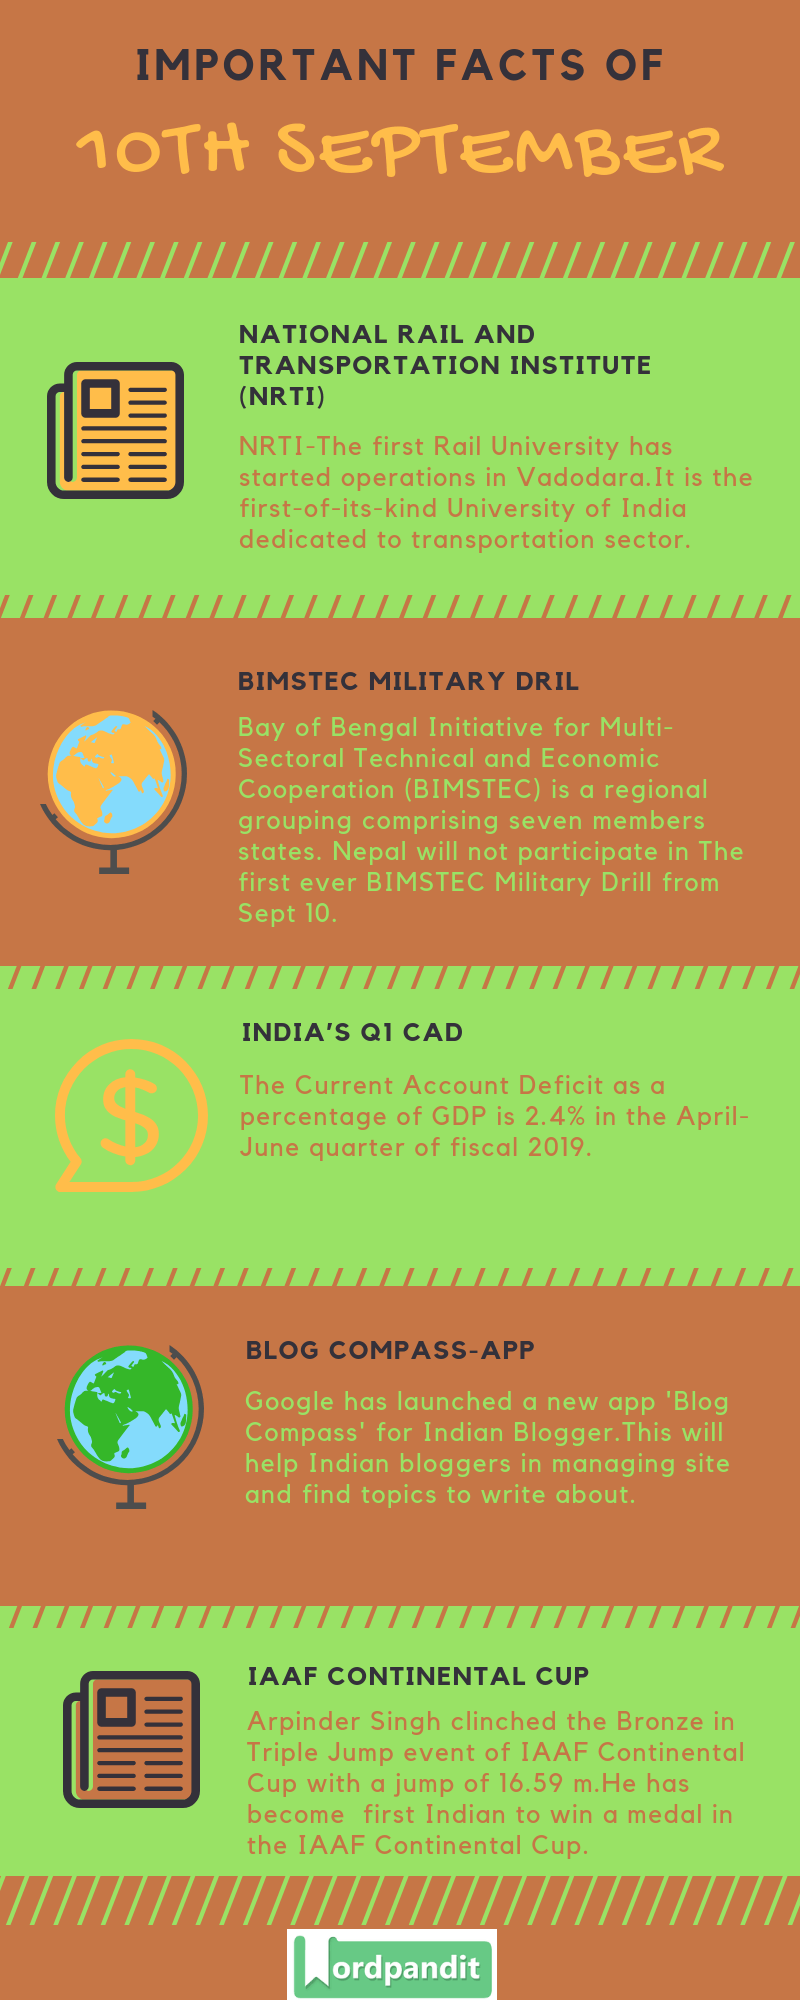 Daily Current Affairs 10 September 2018 Current Affairs Quiz 10 September 2018 Current Affairs Infographic